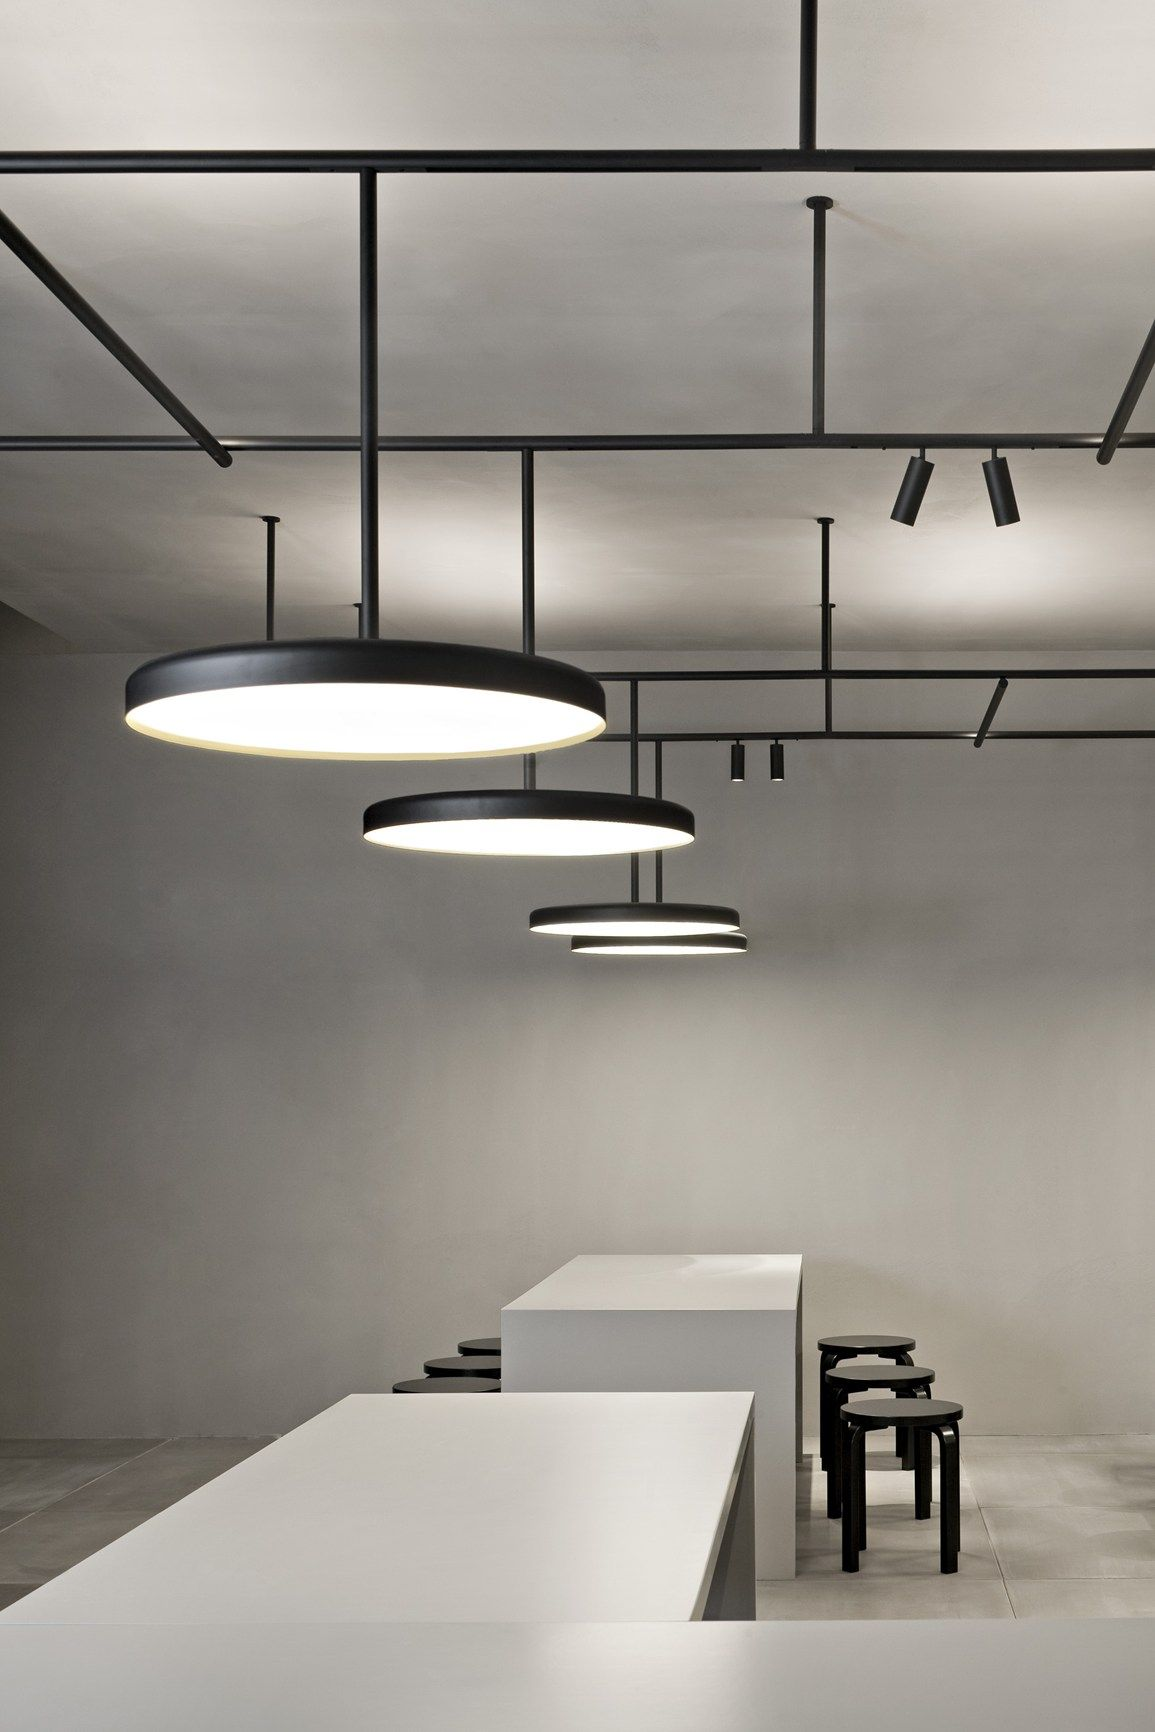 Flos collections at Light+Building